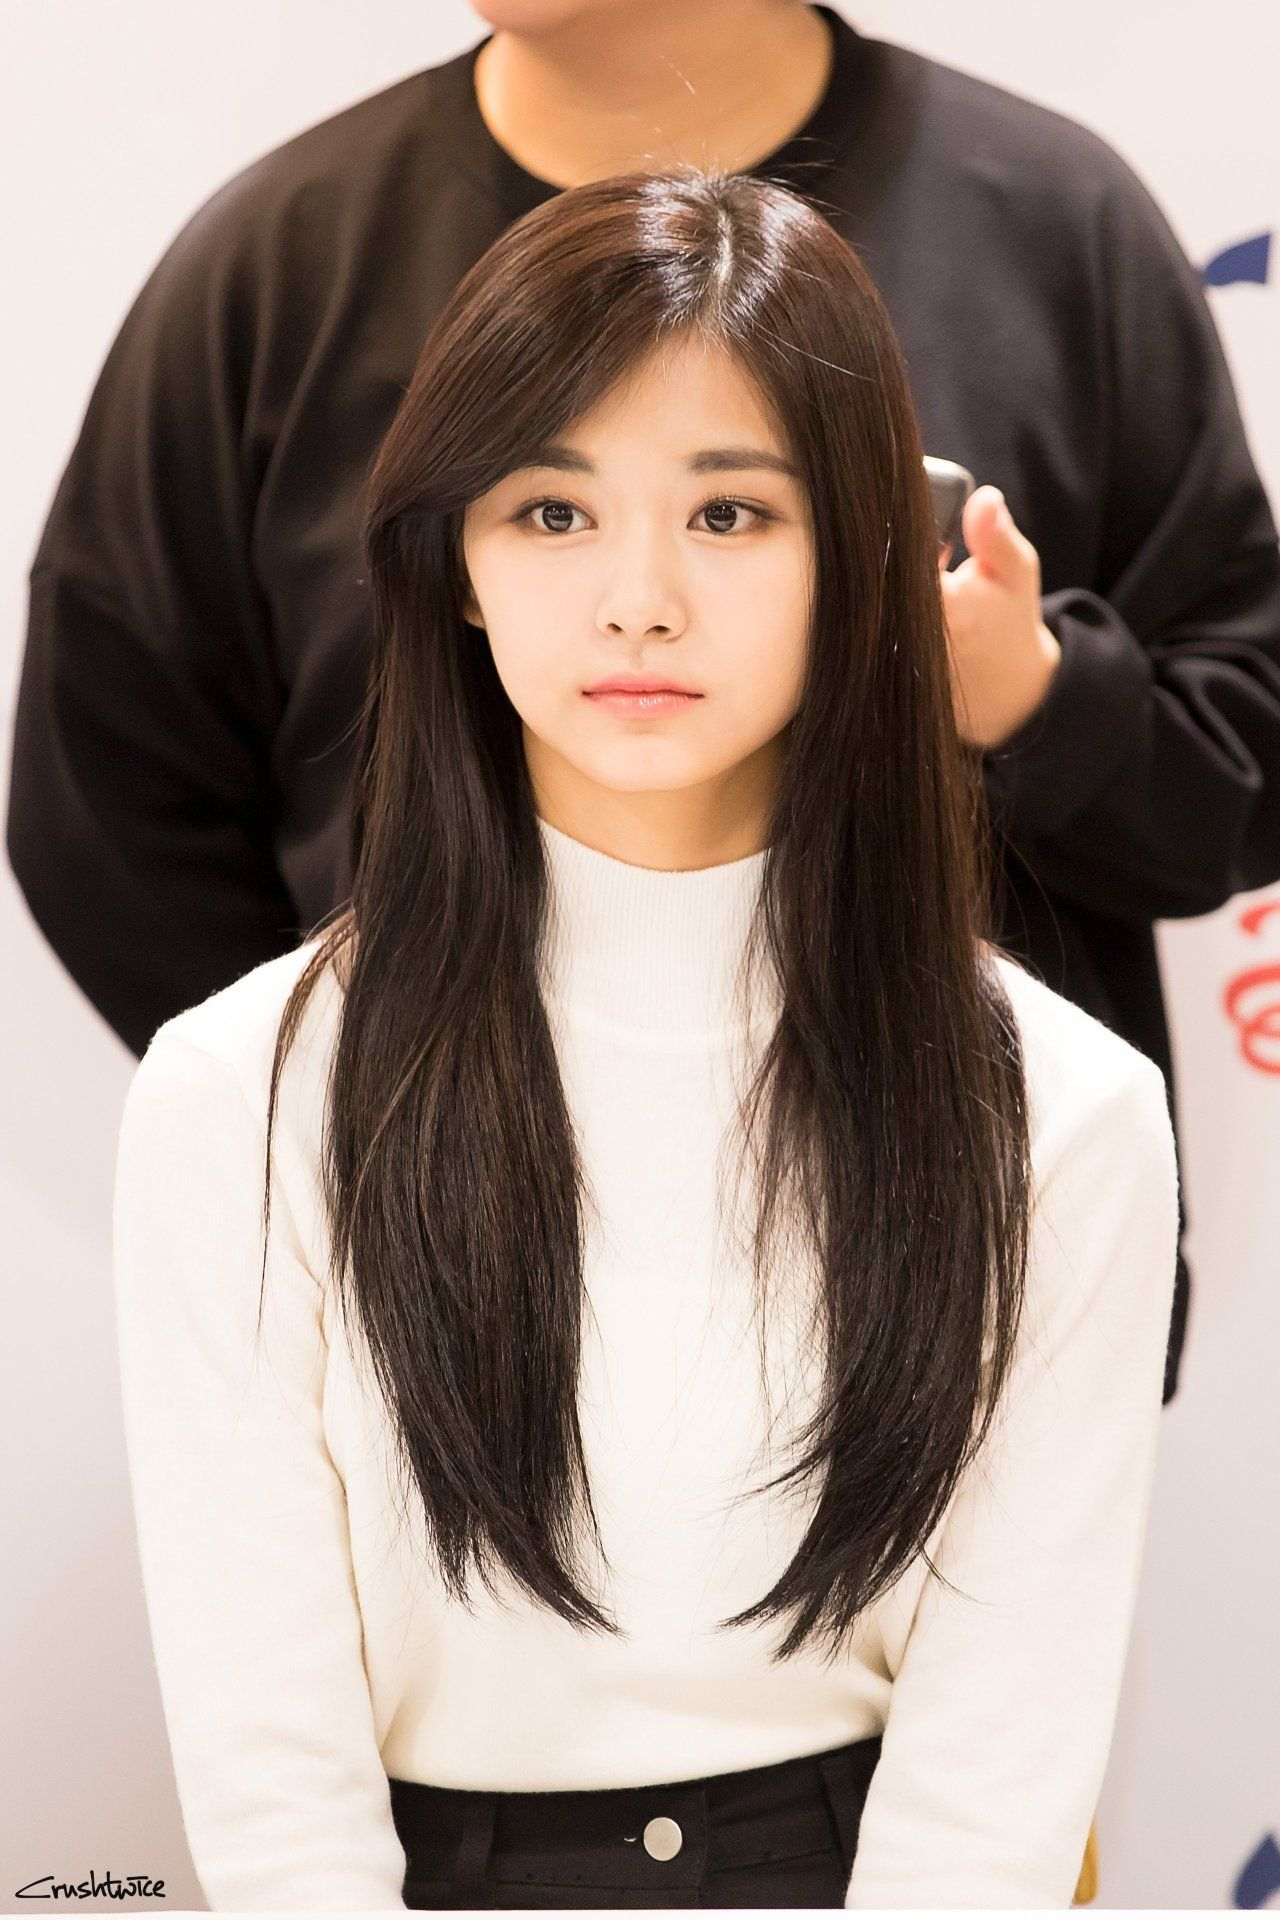 Twice s tzuyu fashion kpop idol kpop in 2019 asian - Korean girl picture ...